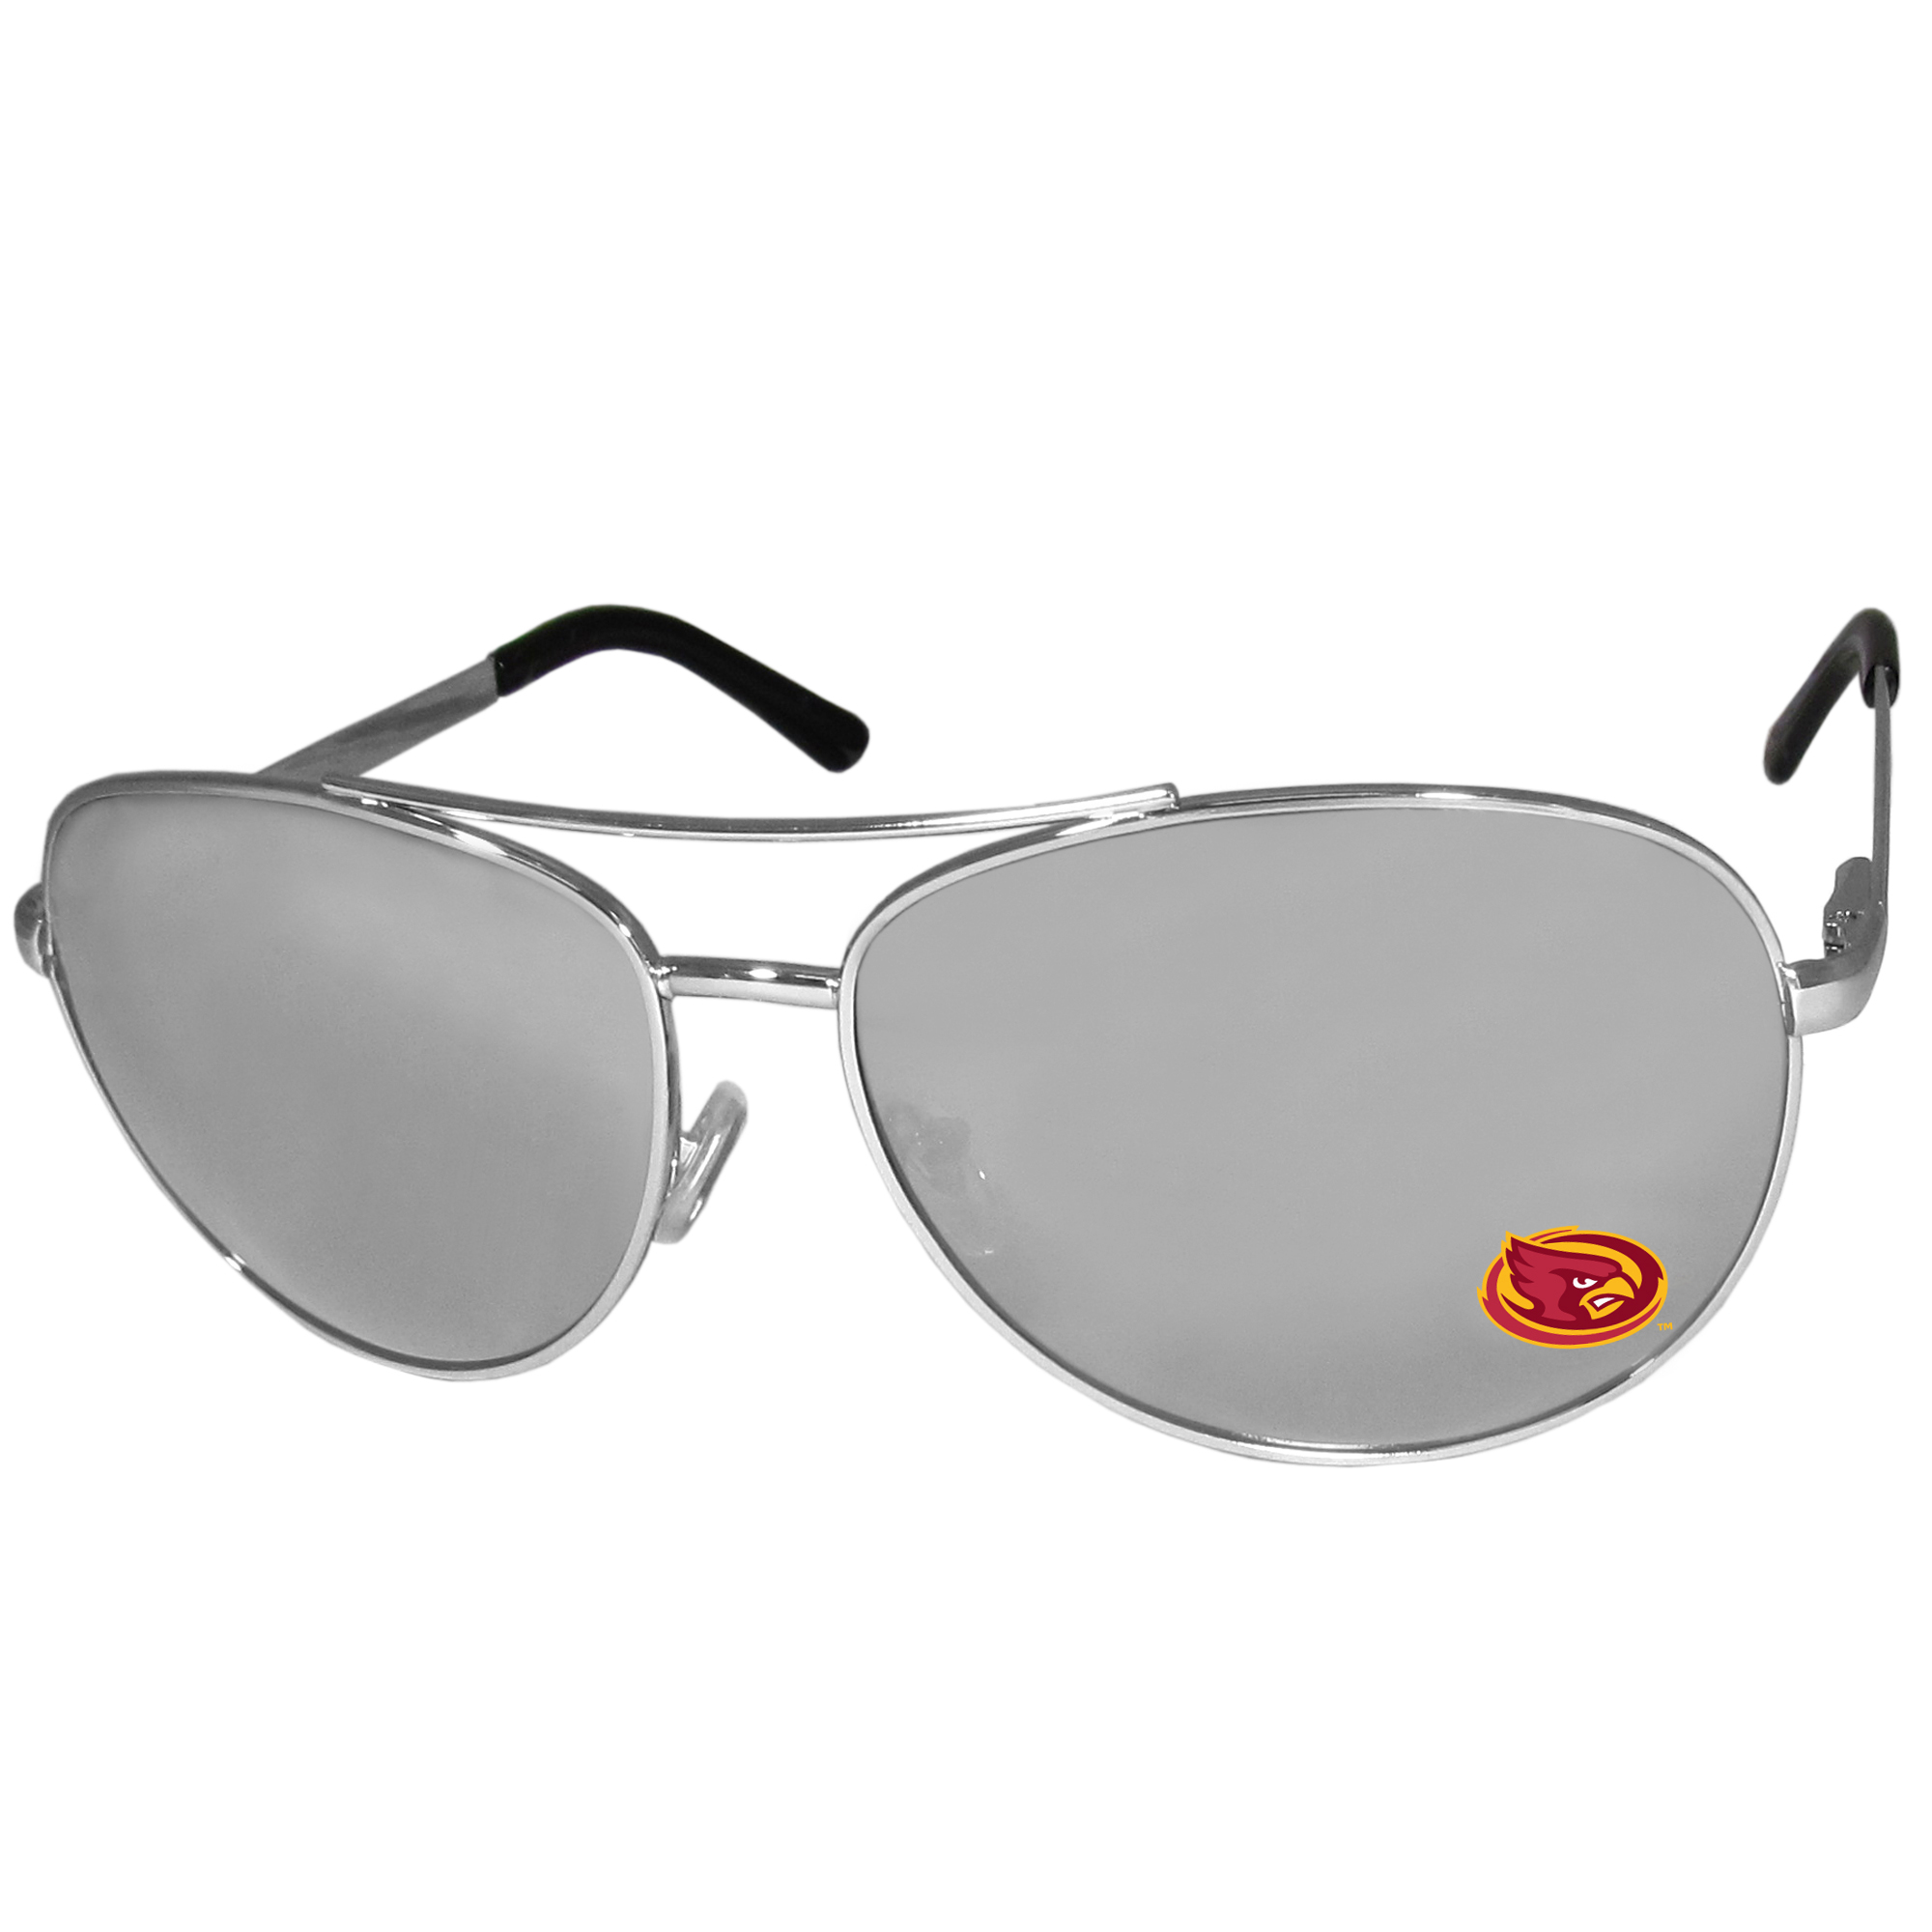 Iowa St. Cyclones Aviator Sunglasses - Our aviator sunglasses have the iconic aviator style with mirrored lenses and metal frames. The glasses feature a silk screened Iowa St. Cyclones logo in the corner of the lense. 100% UVA/UVB protection.